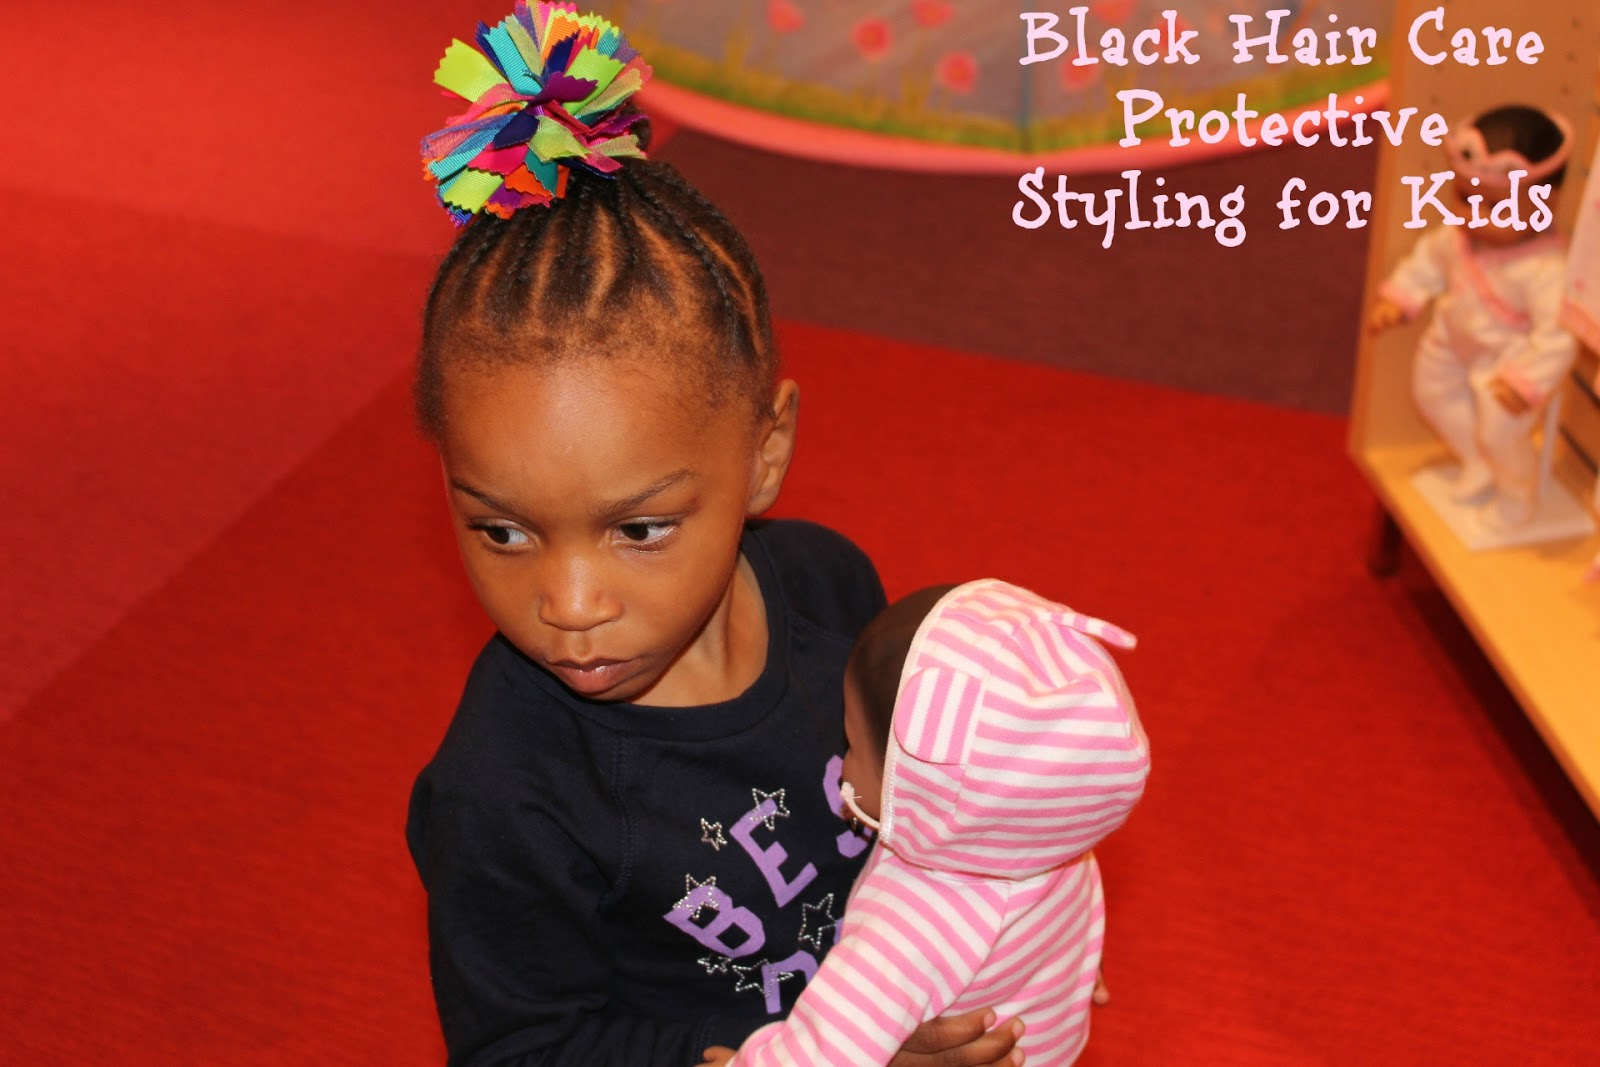 Black Hair Care Protective Styling For Kids Annmarie John Llc A Travel And Lifestyle Blog